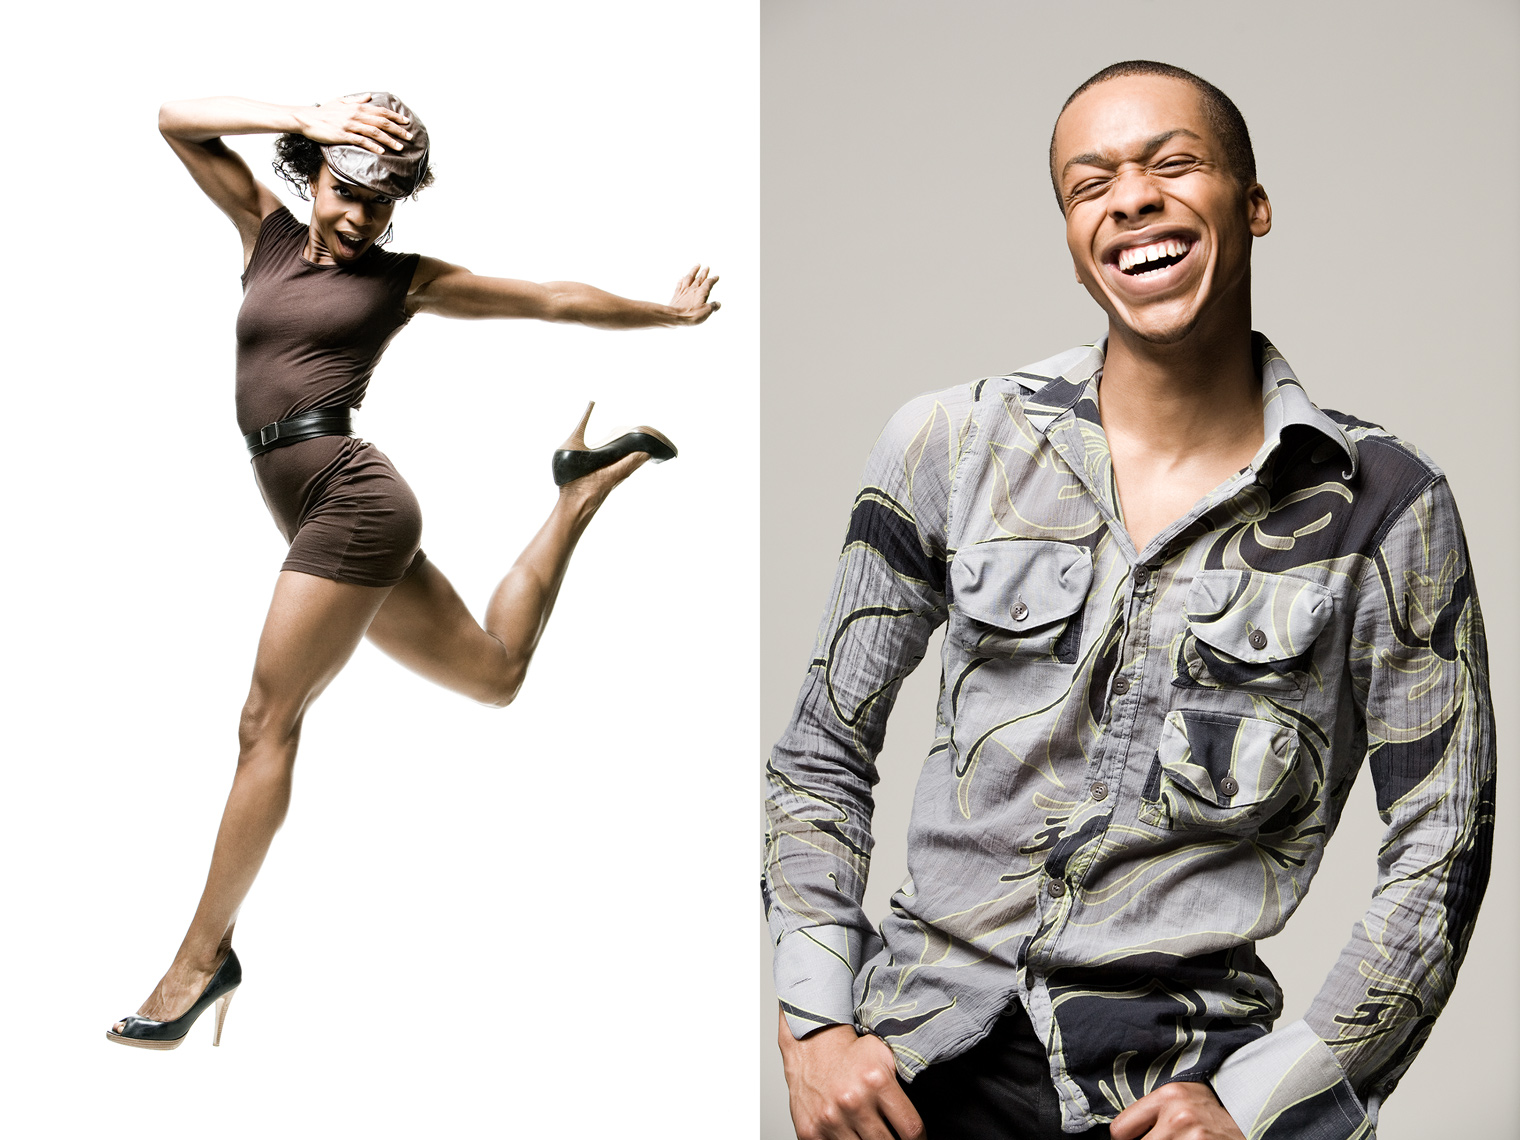 Los Angeles Portrait Photography, Michael Brian, pet, cat, dance, Amazing African American male and female dancers showcasing their talent, studio portraits